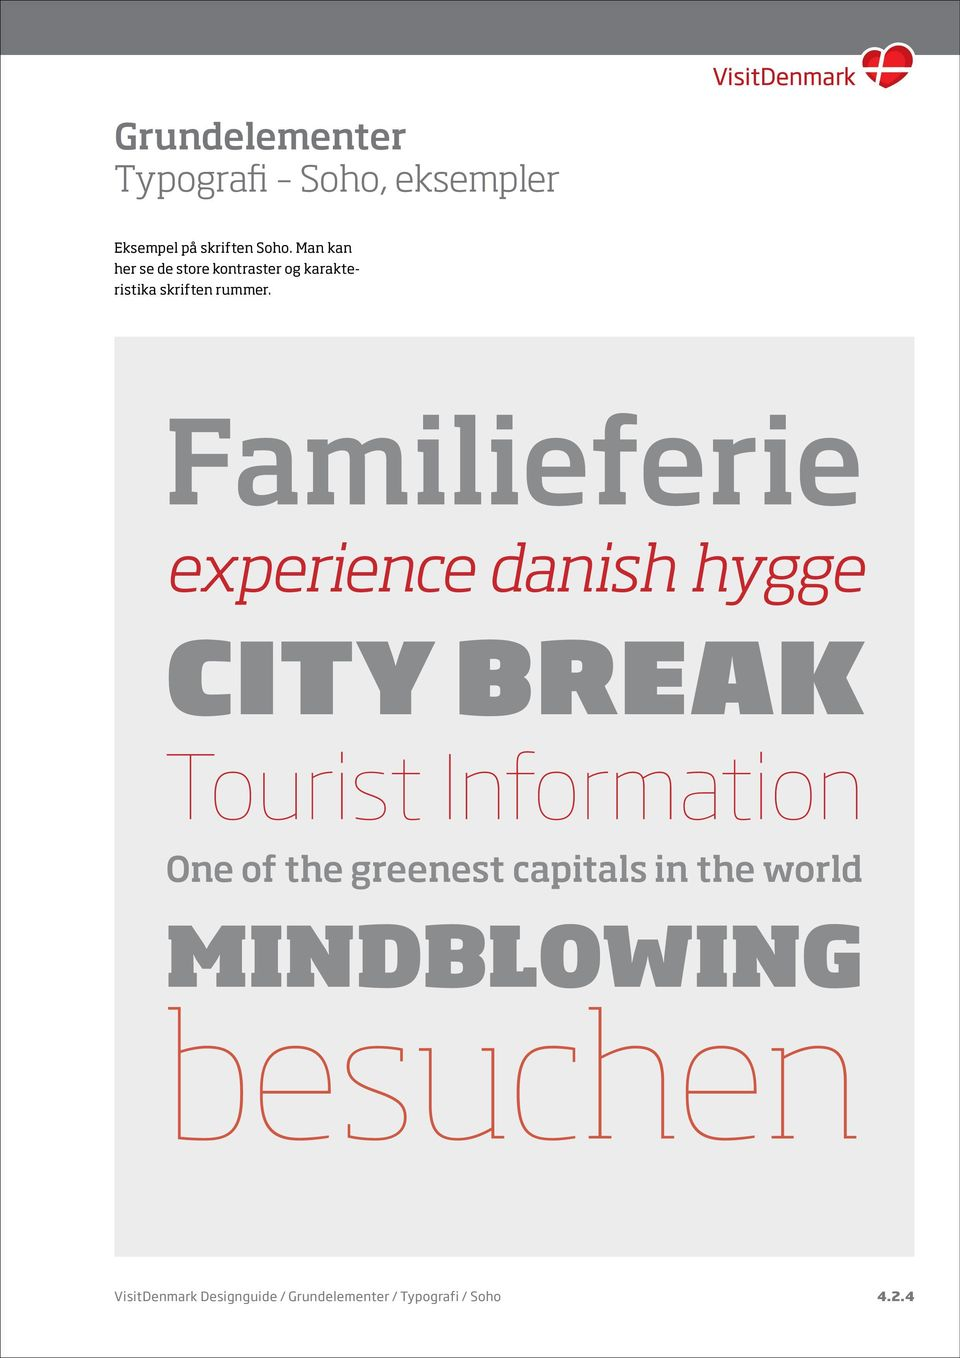 Familieferie eperience danish hygge City Break Tourist Information One of the